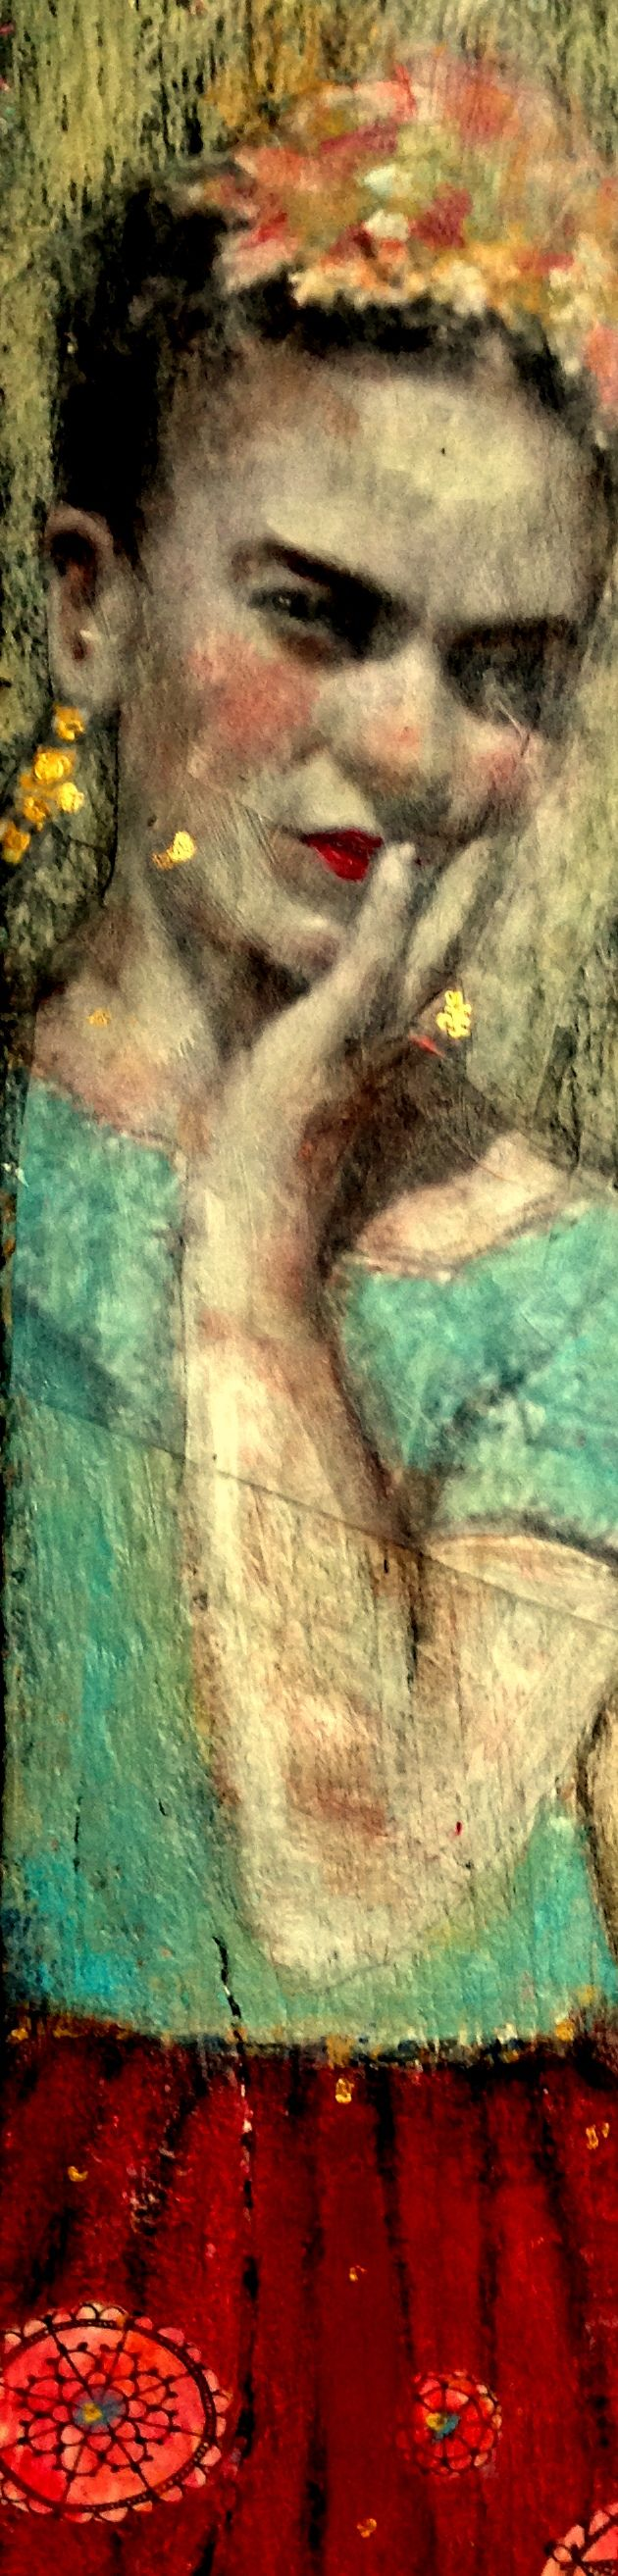 mixed media on found board from Heather Murray Canadian artist